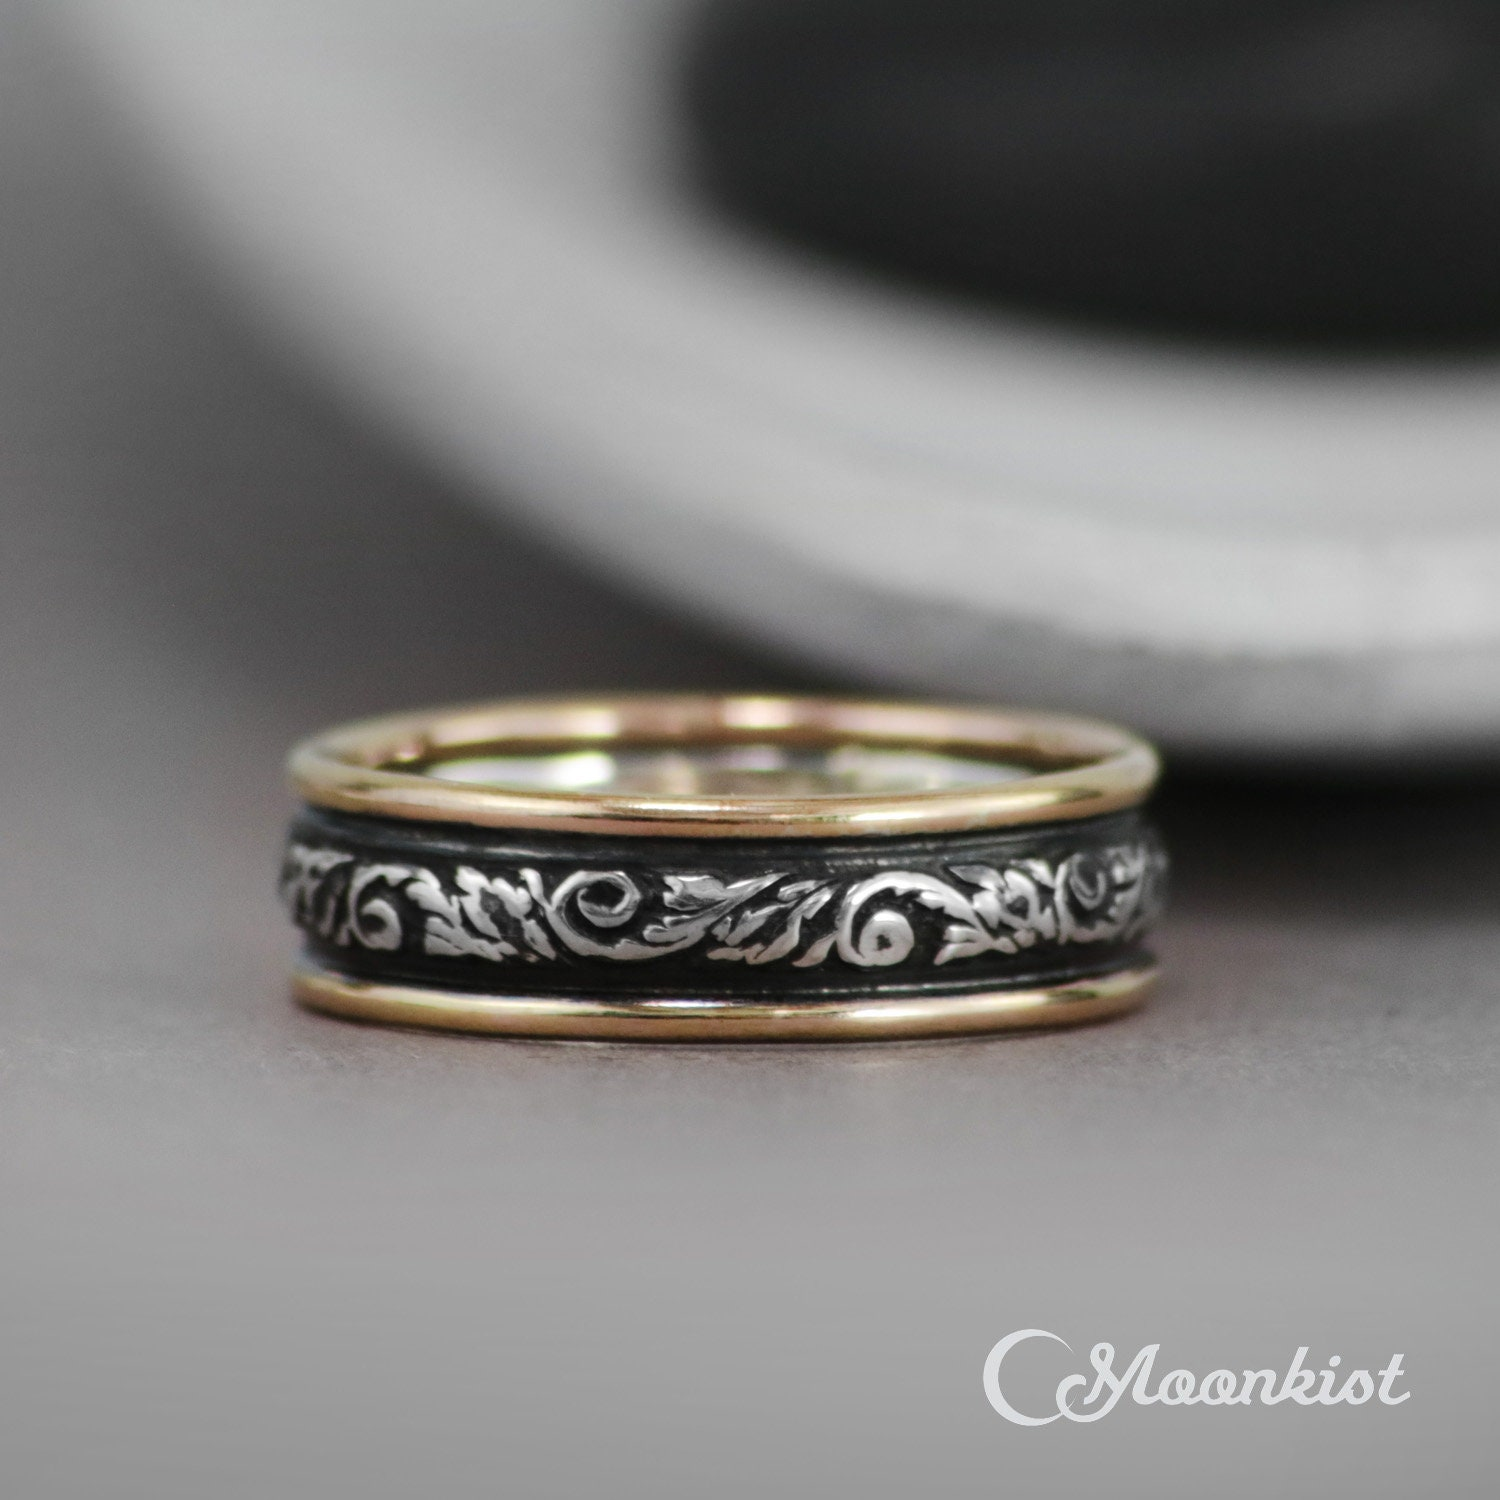 50: Gold And Silver Embossed Wedding Bands At Reisefeber.org